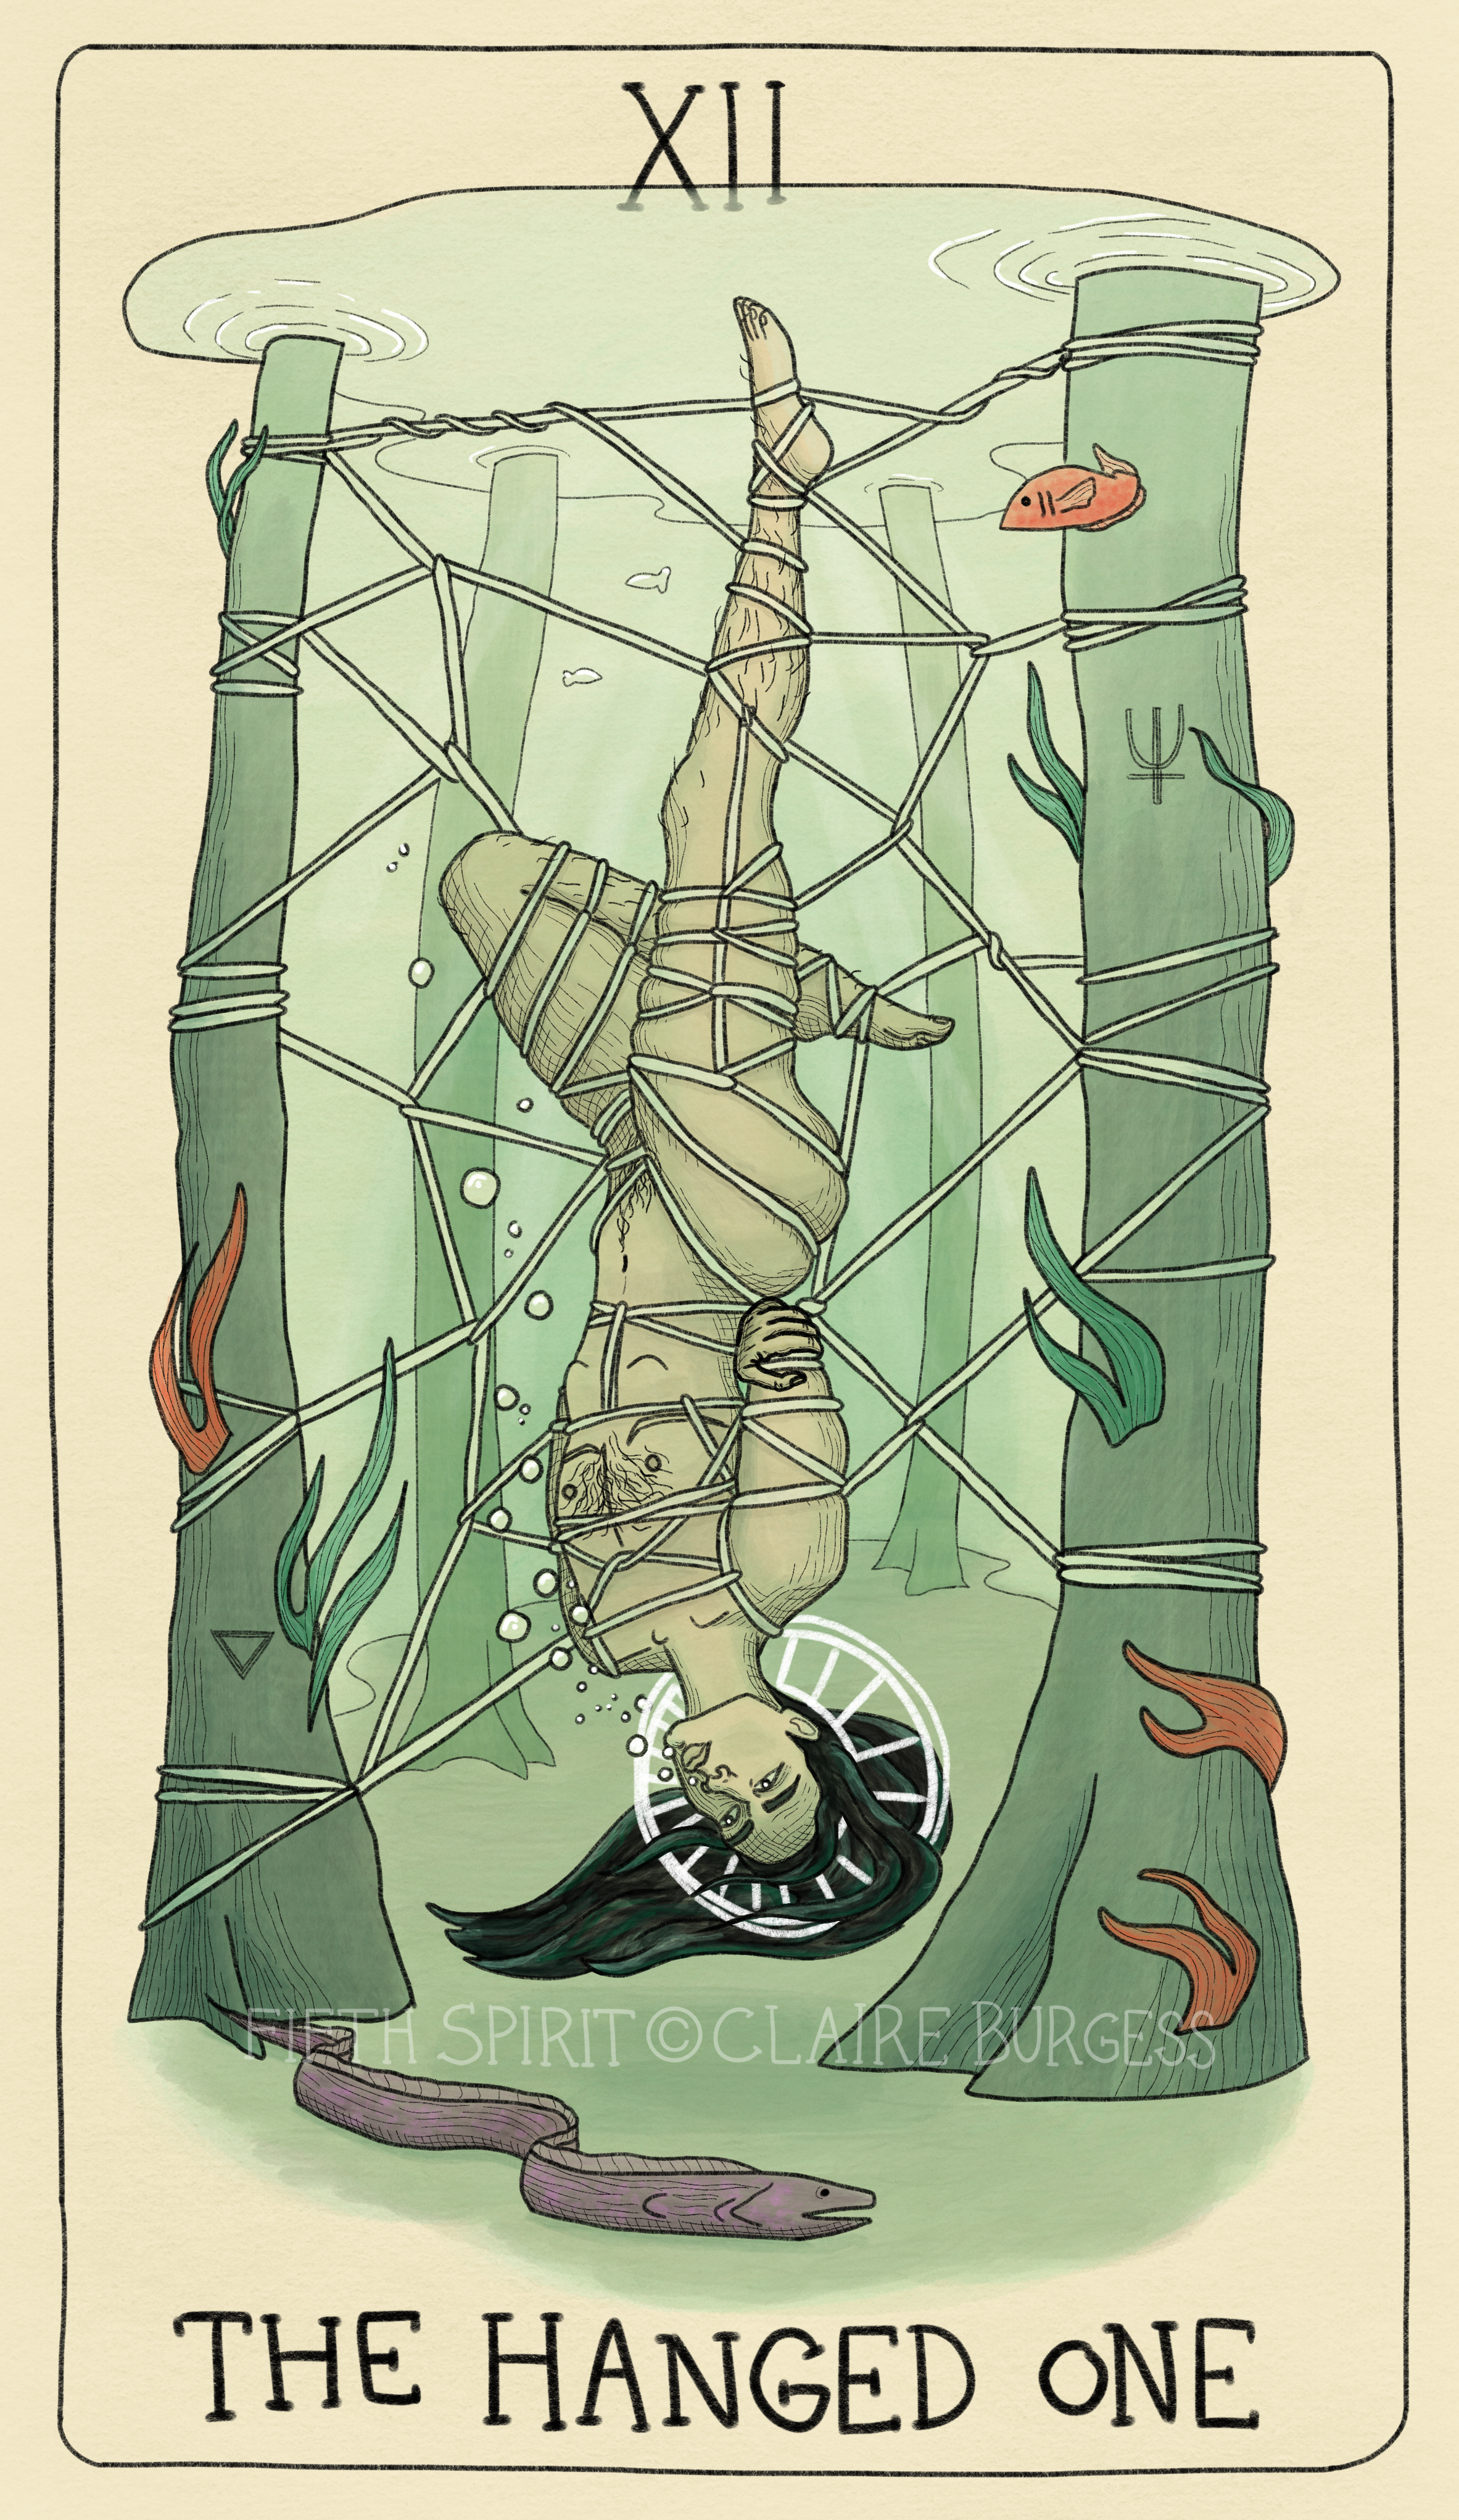 12 The Hanged One Fifth Spirit Tarot